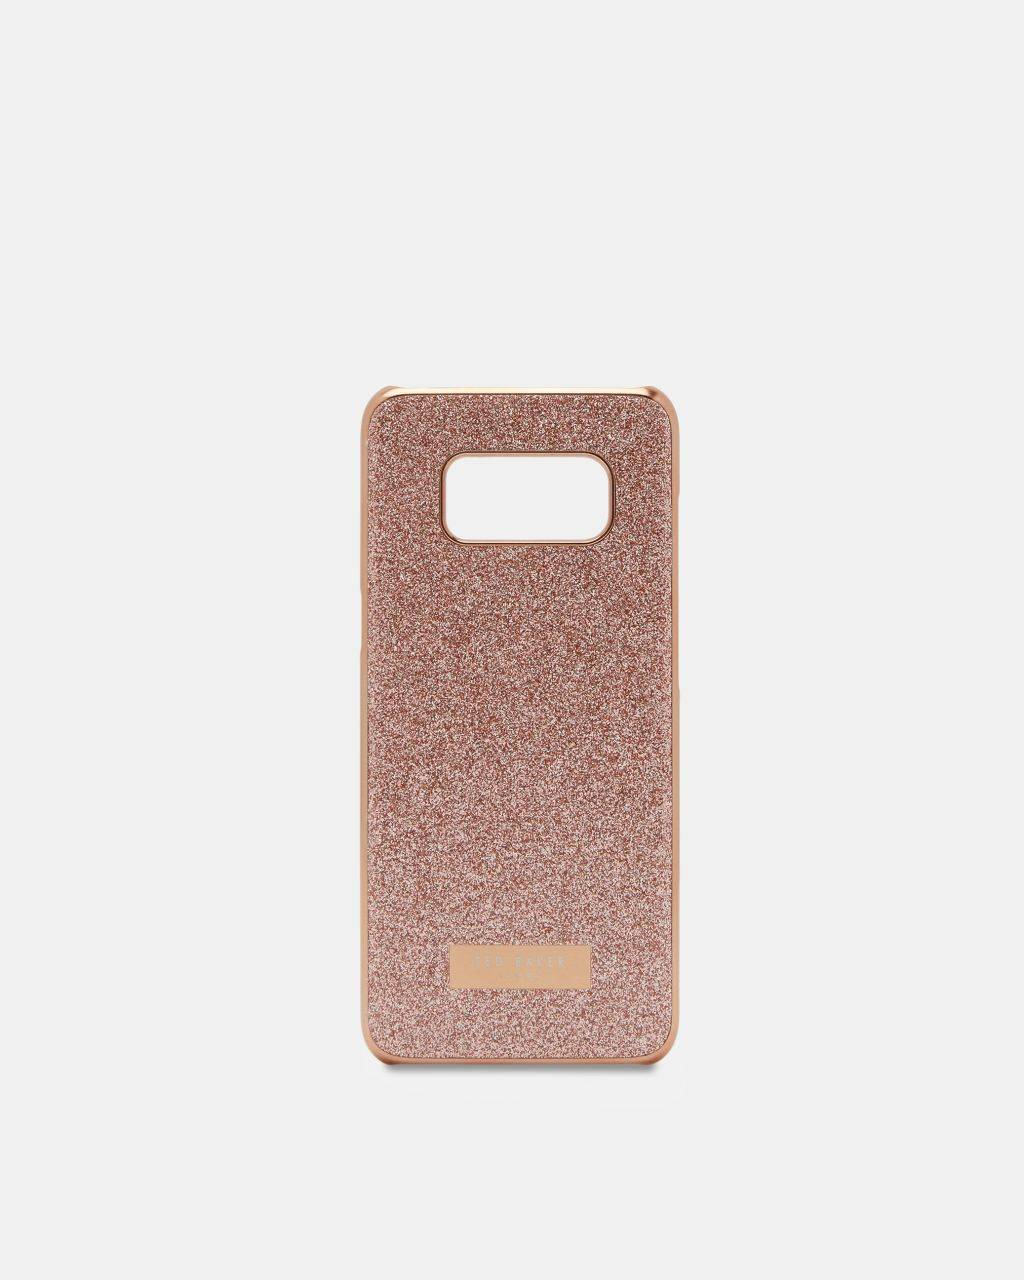 Ted Baker Glitter Samsung S8 Case  - Rose Gold - Size: One Size